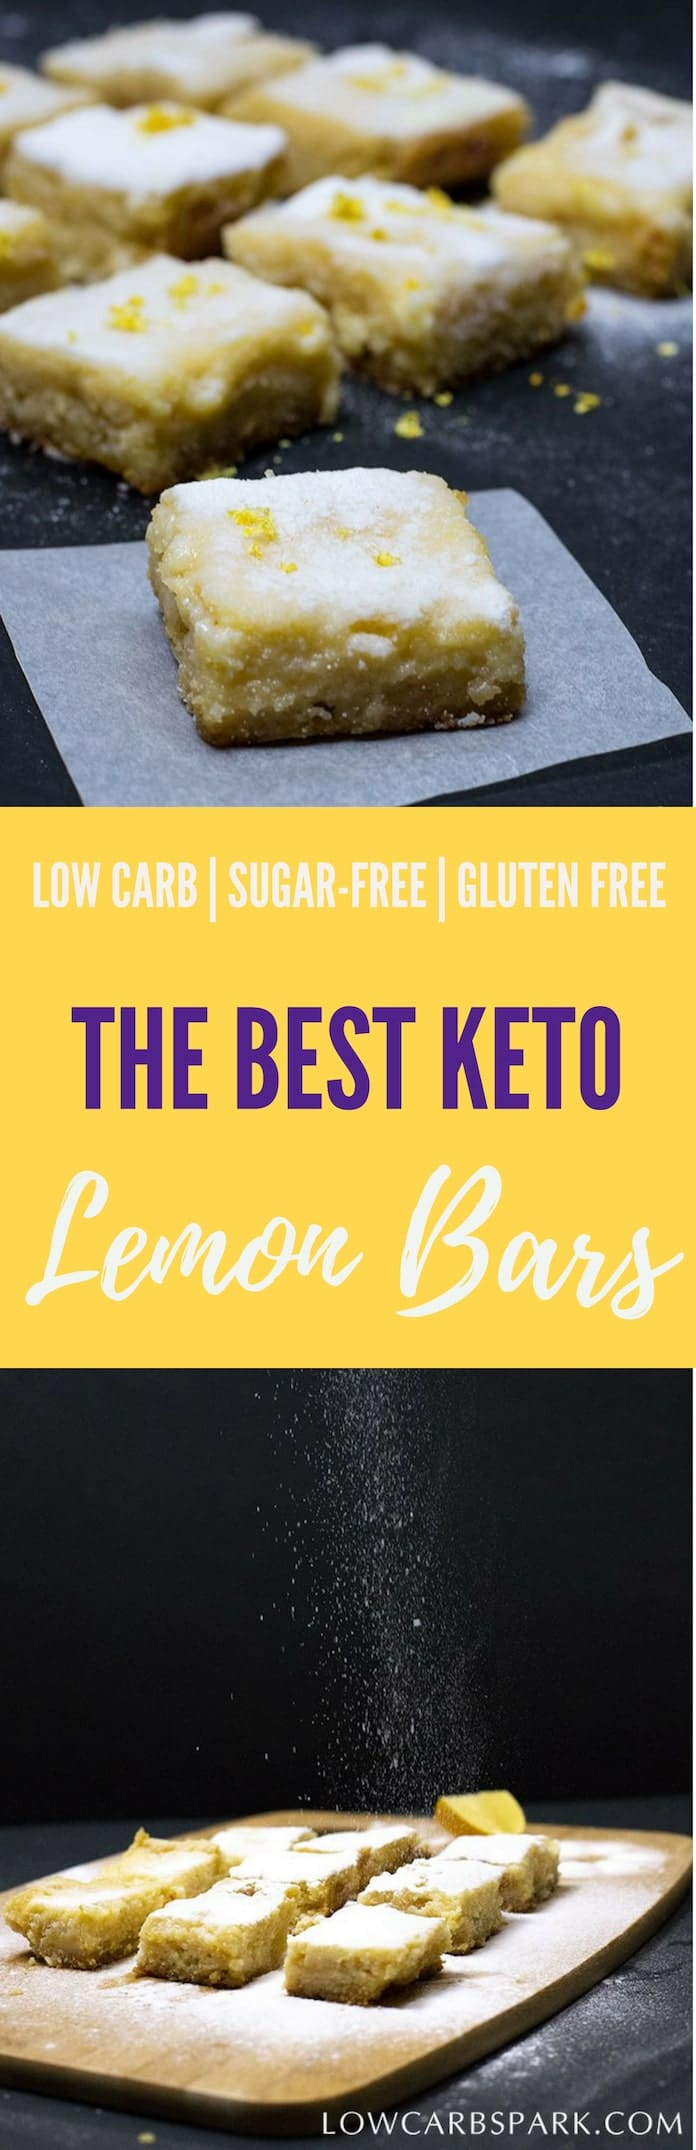 Keto Lemon Bars Recipe - Try these easy, sugar-free lemon bars that have only 2g net carbs and very tasty! You will never believe they are keto friendly, low calories, low carb and sugar-free! | #Glutenfree #Lowcarb #keto #sugarfree #healthy via @lowcarbspark